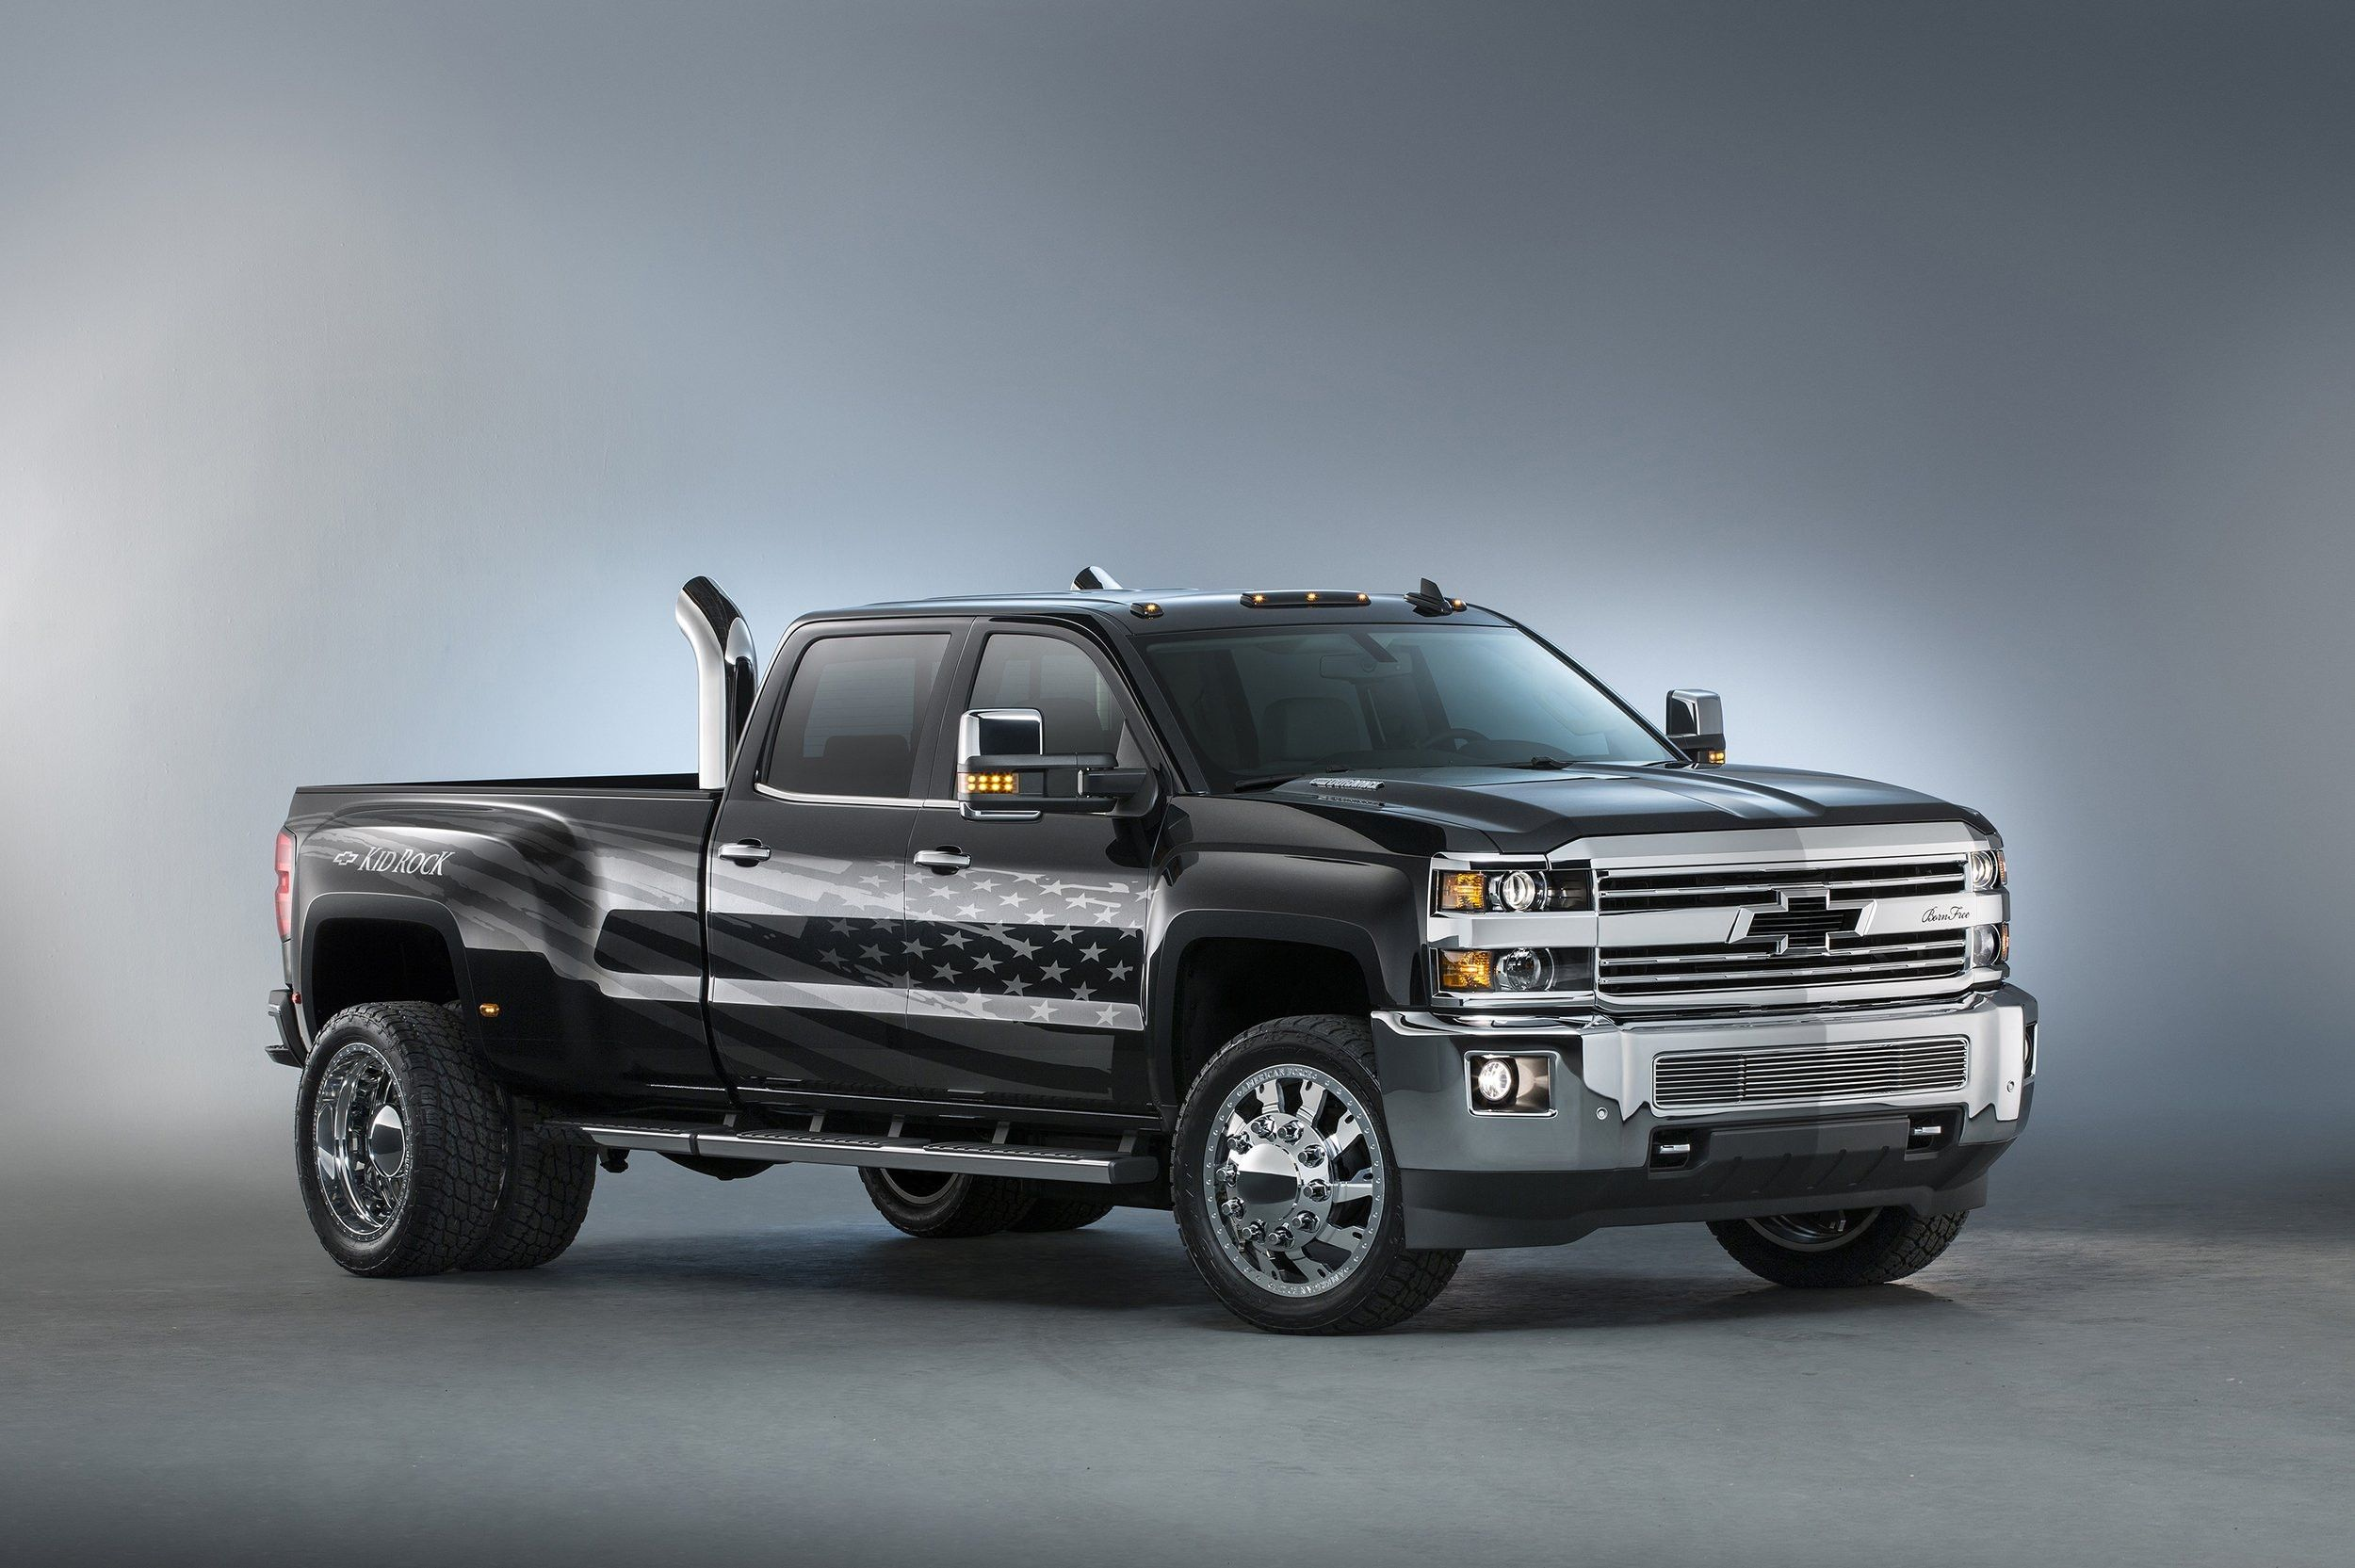 Chevy Trucks Wallpapers Posted By Michelle Tremblay